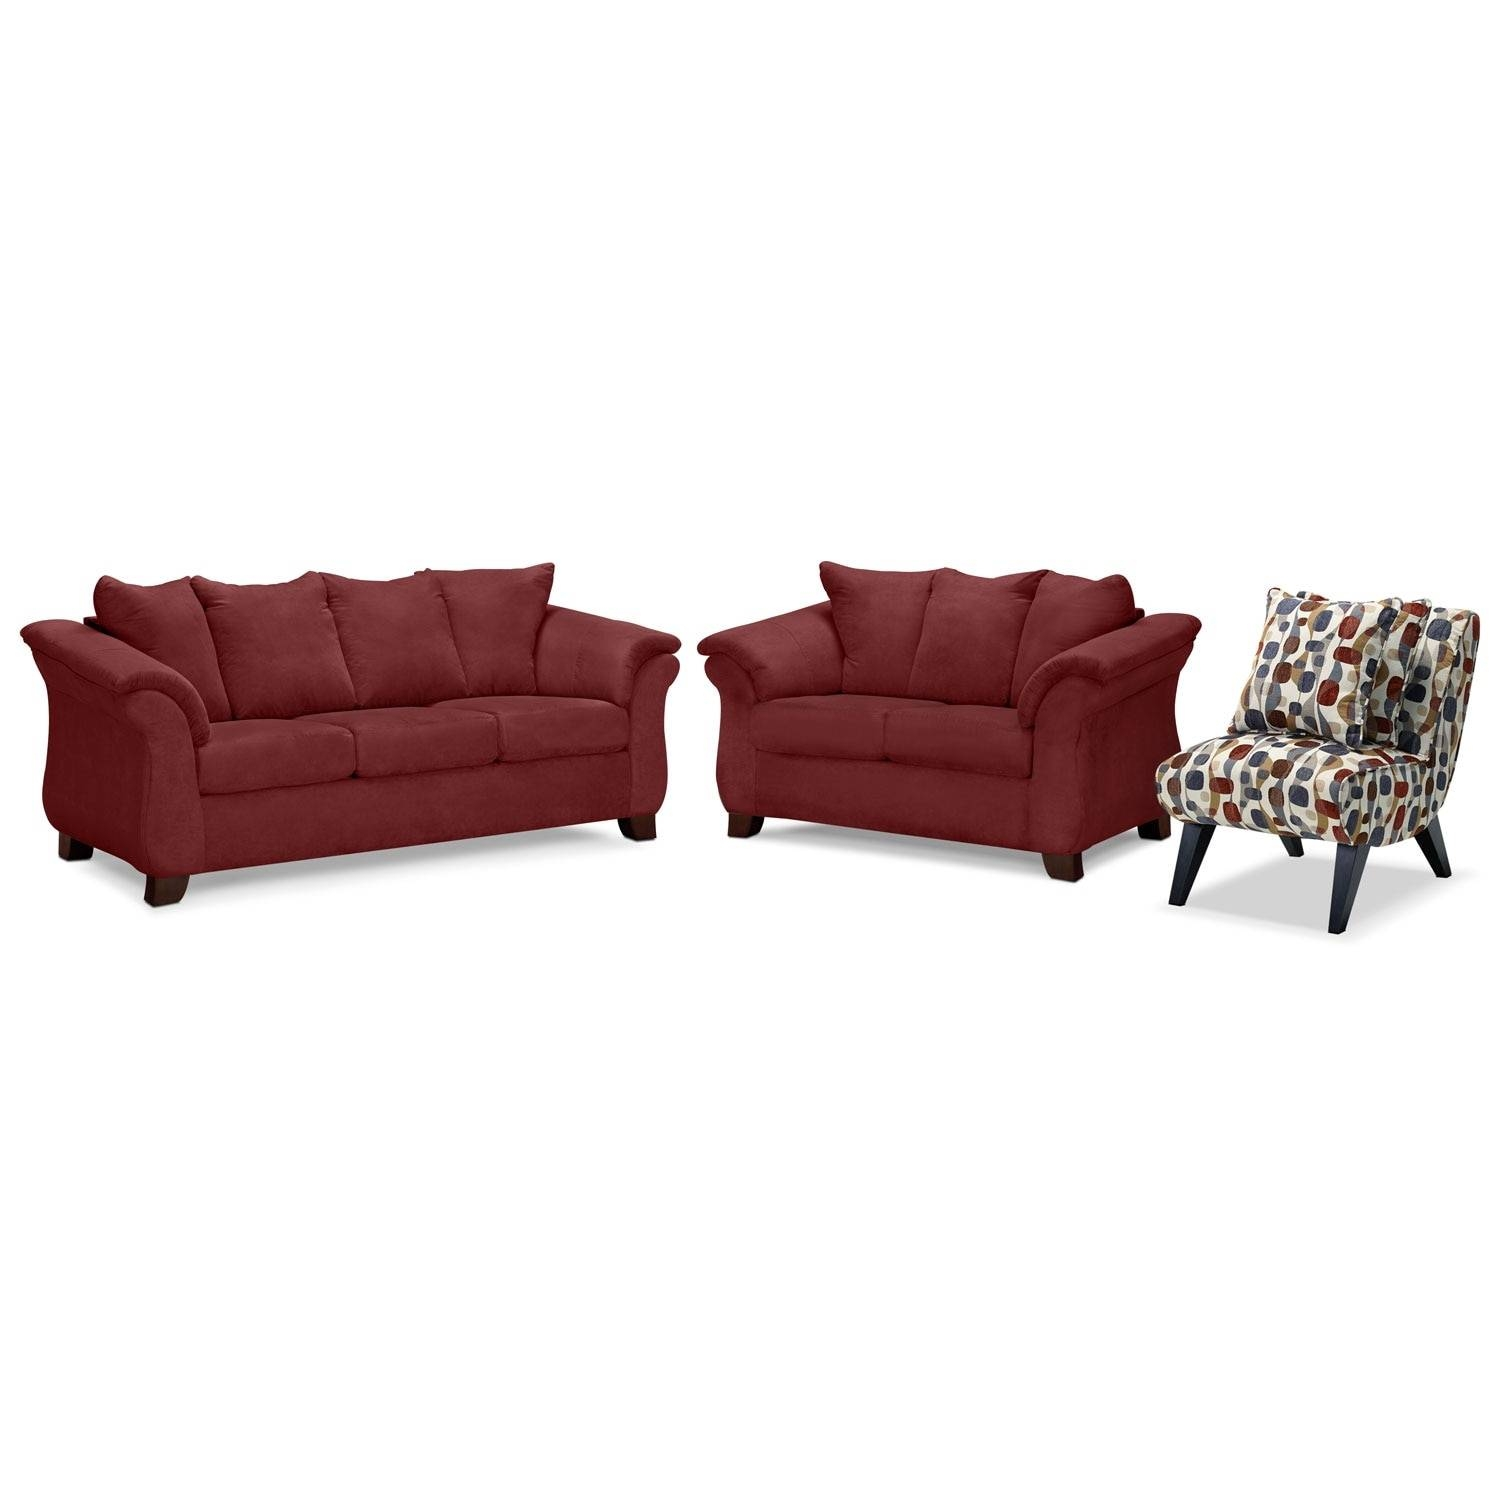 Adrian Sofa, Loveseat And Accent Chair Set - Red | Value City regarding Sofa and Accent Chair Set (Image 4 of 30)